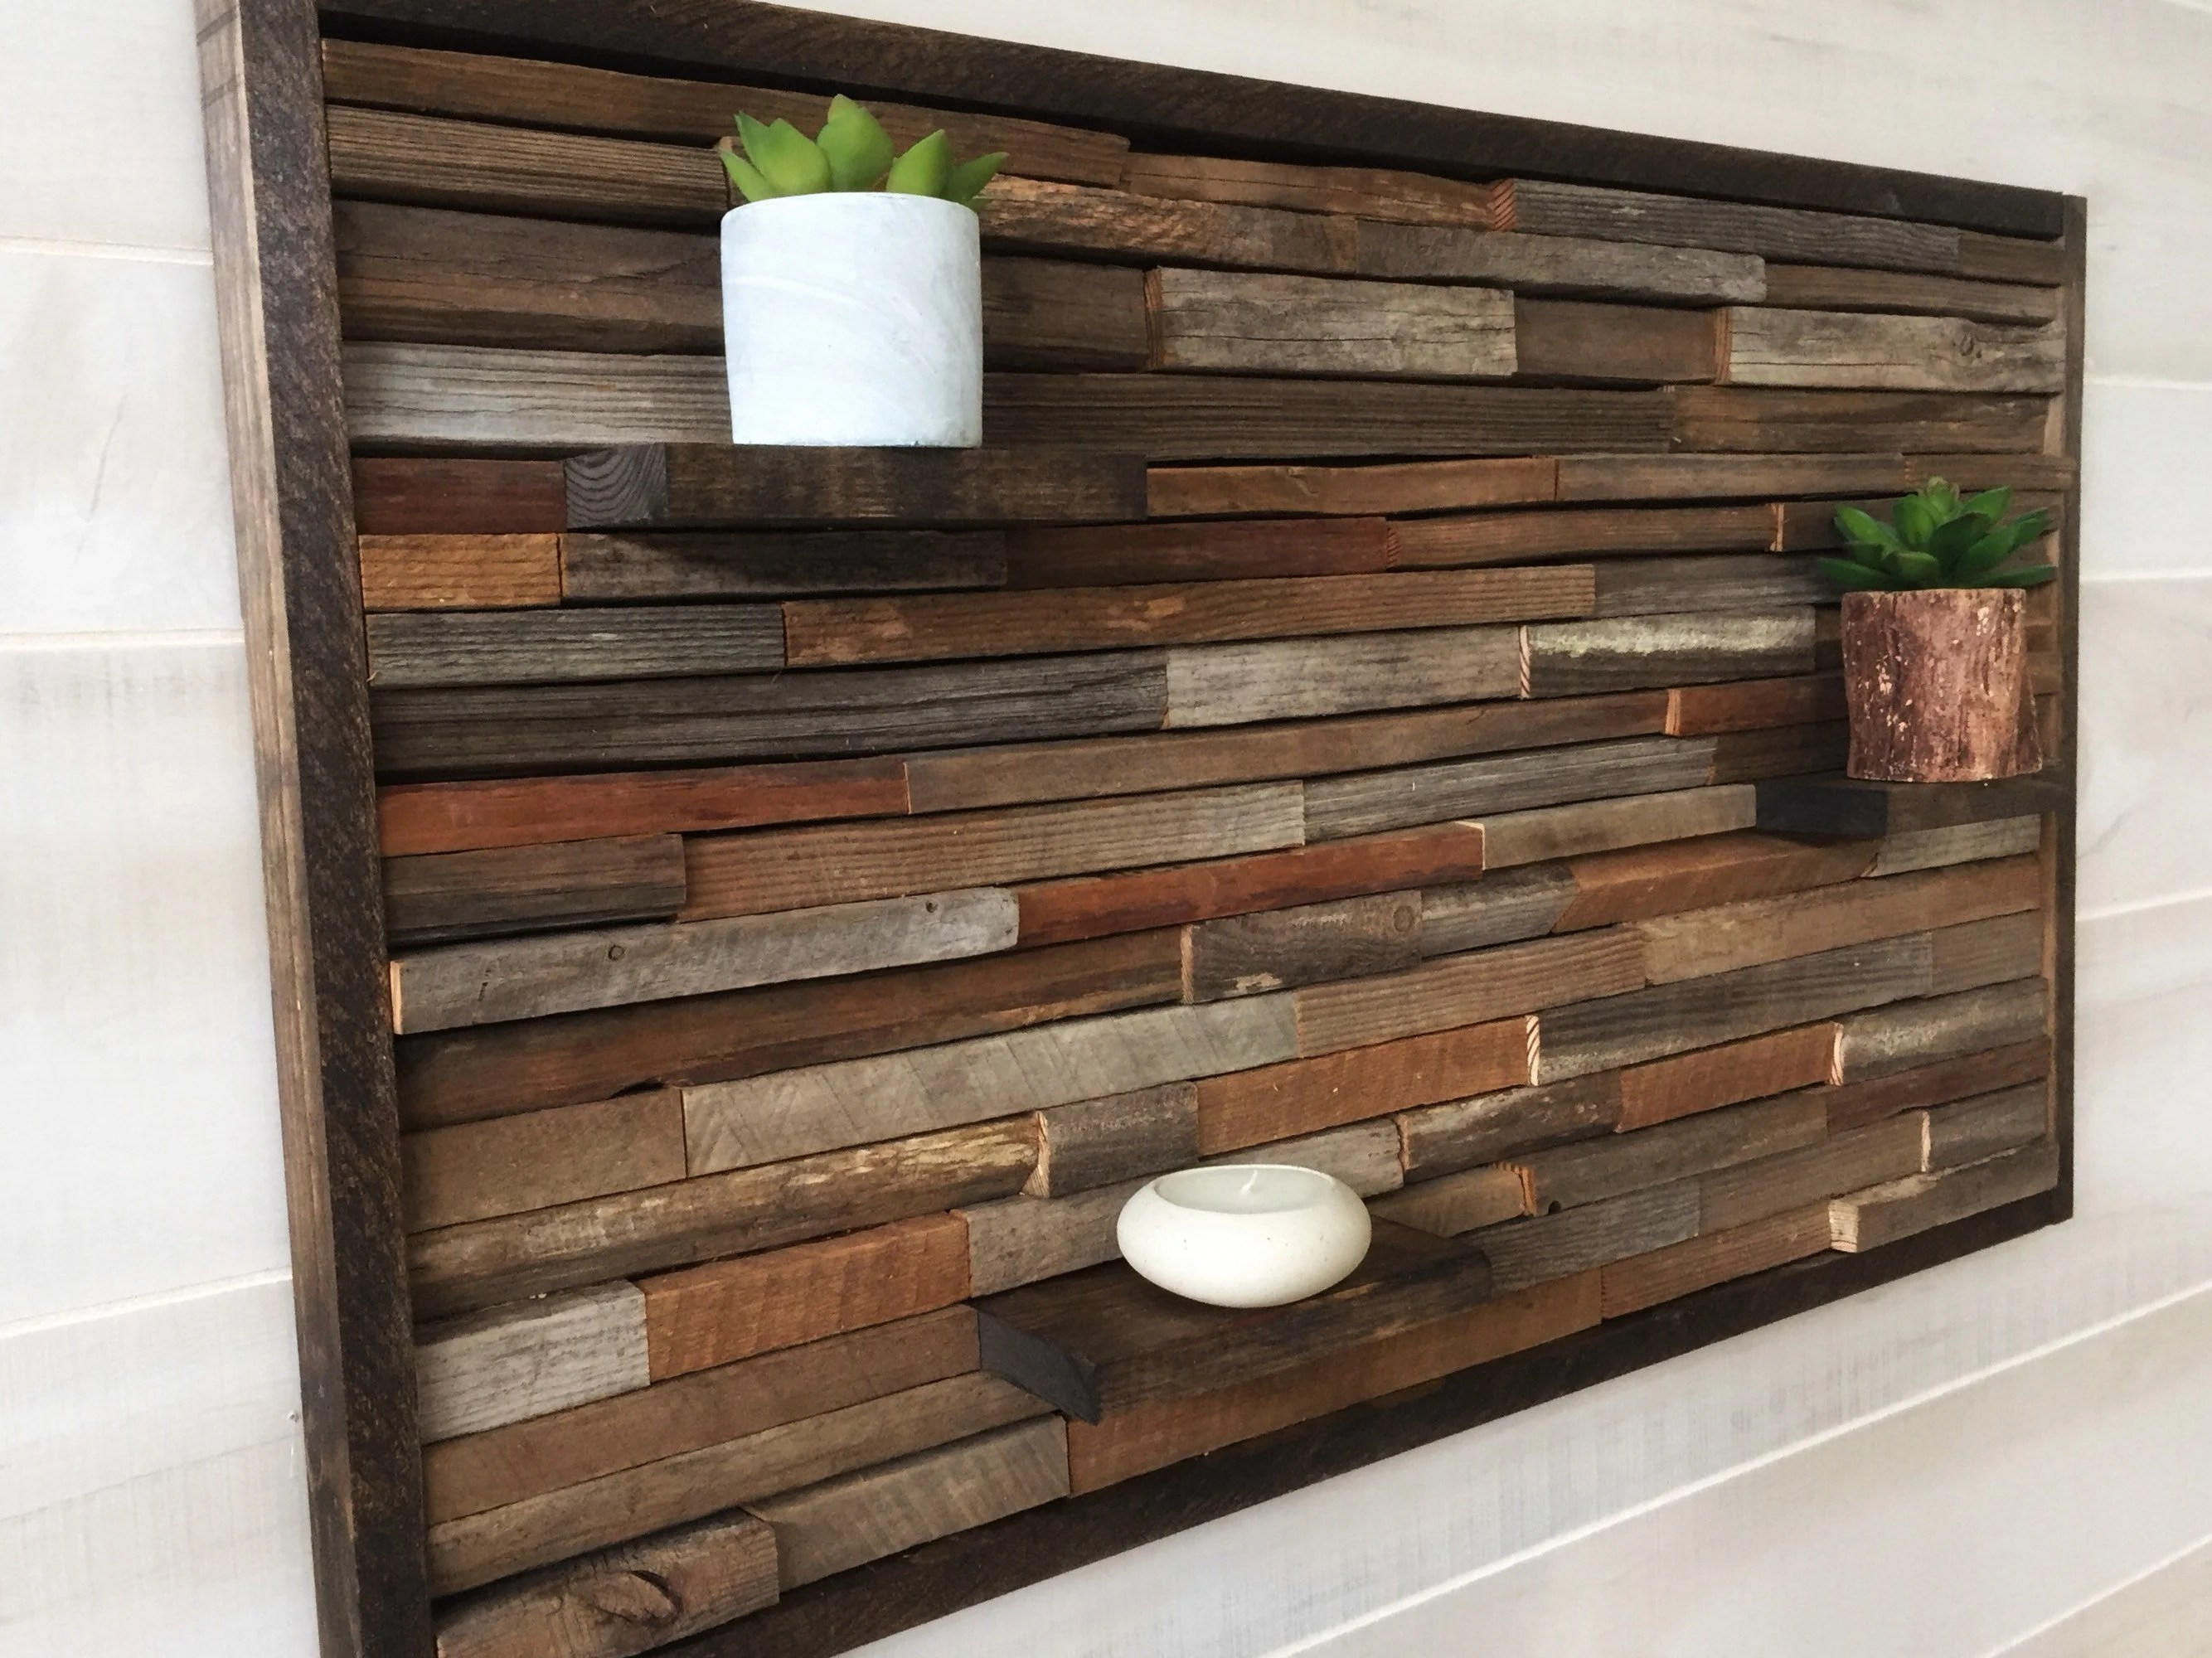 Sleek Reclaimed Wood Wall Wood Wall Rustic Rustic Wall Sticks Reclaimed Wood Wall Wood Wall Rustic Rustic Wall Wood Wall Decor Etsy Wood Wall Decor Panels houzz-02 Wood Wall Decor